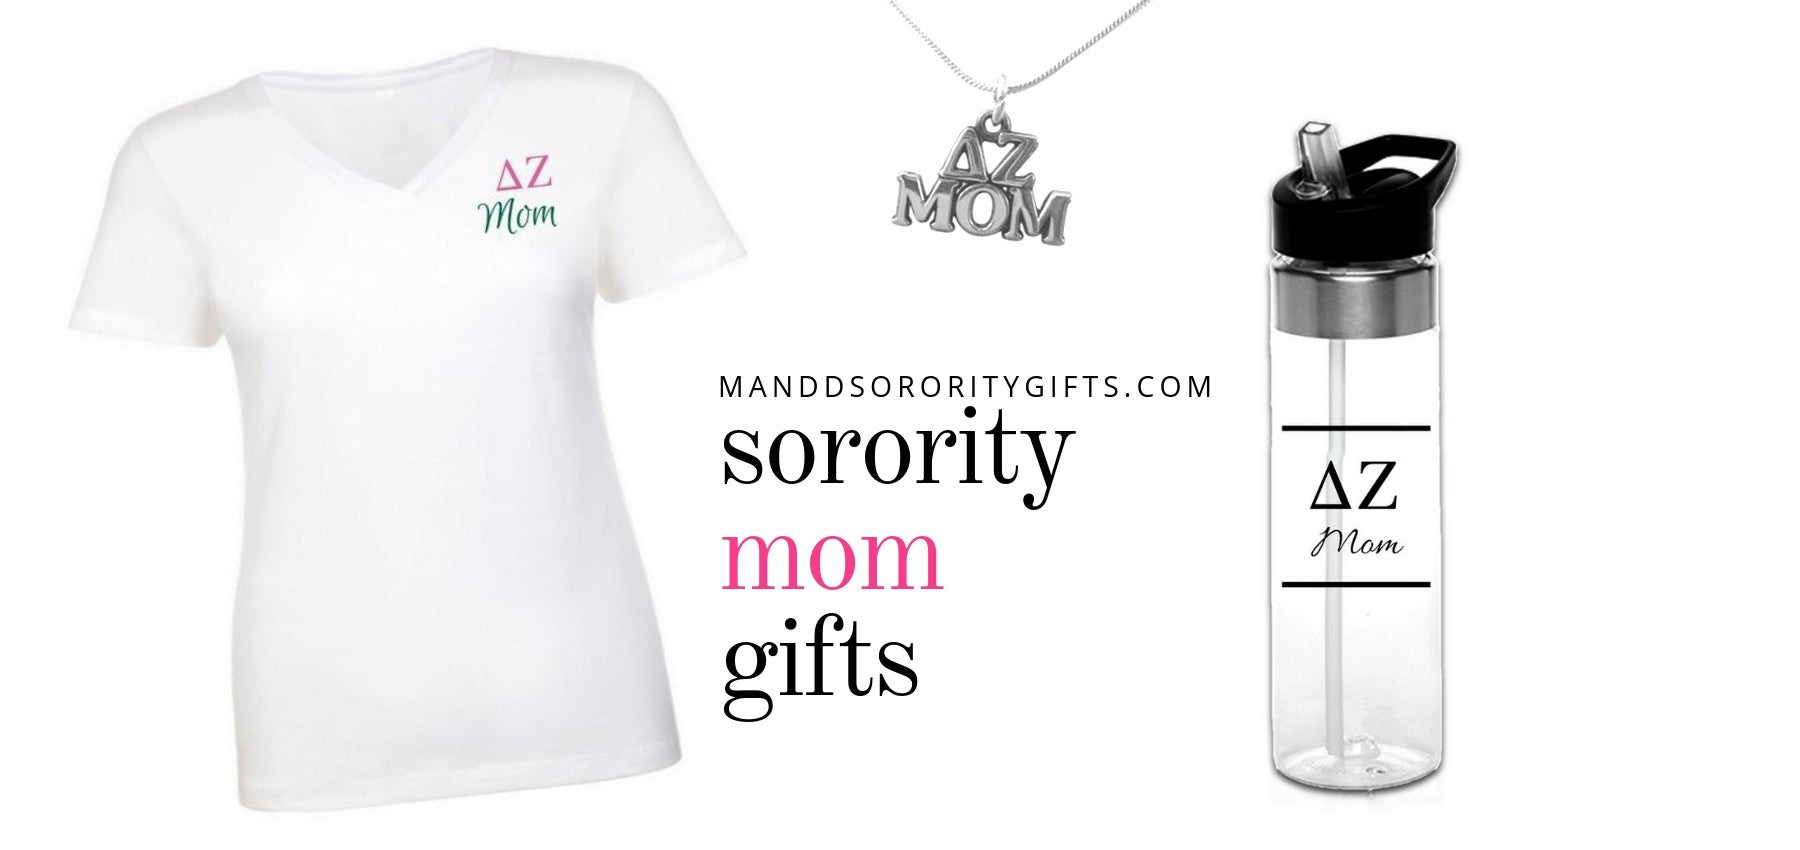 Delta Zeta Mom Gifts I 12 Reasons Moms Are the Best